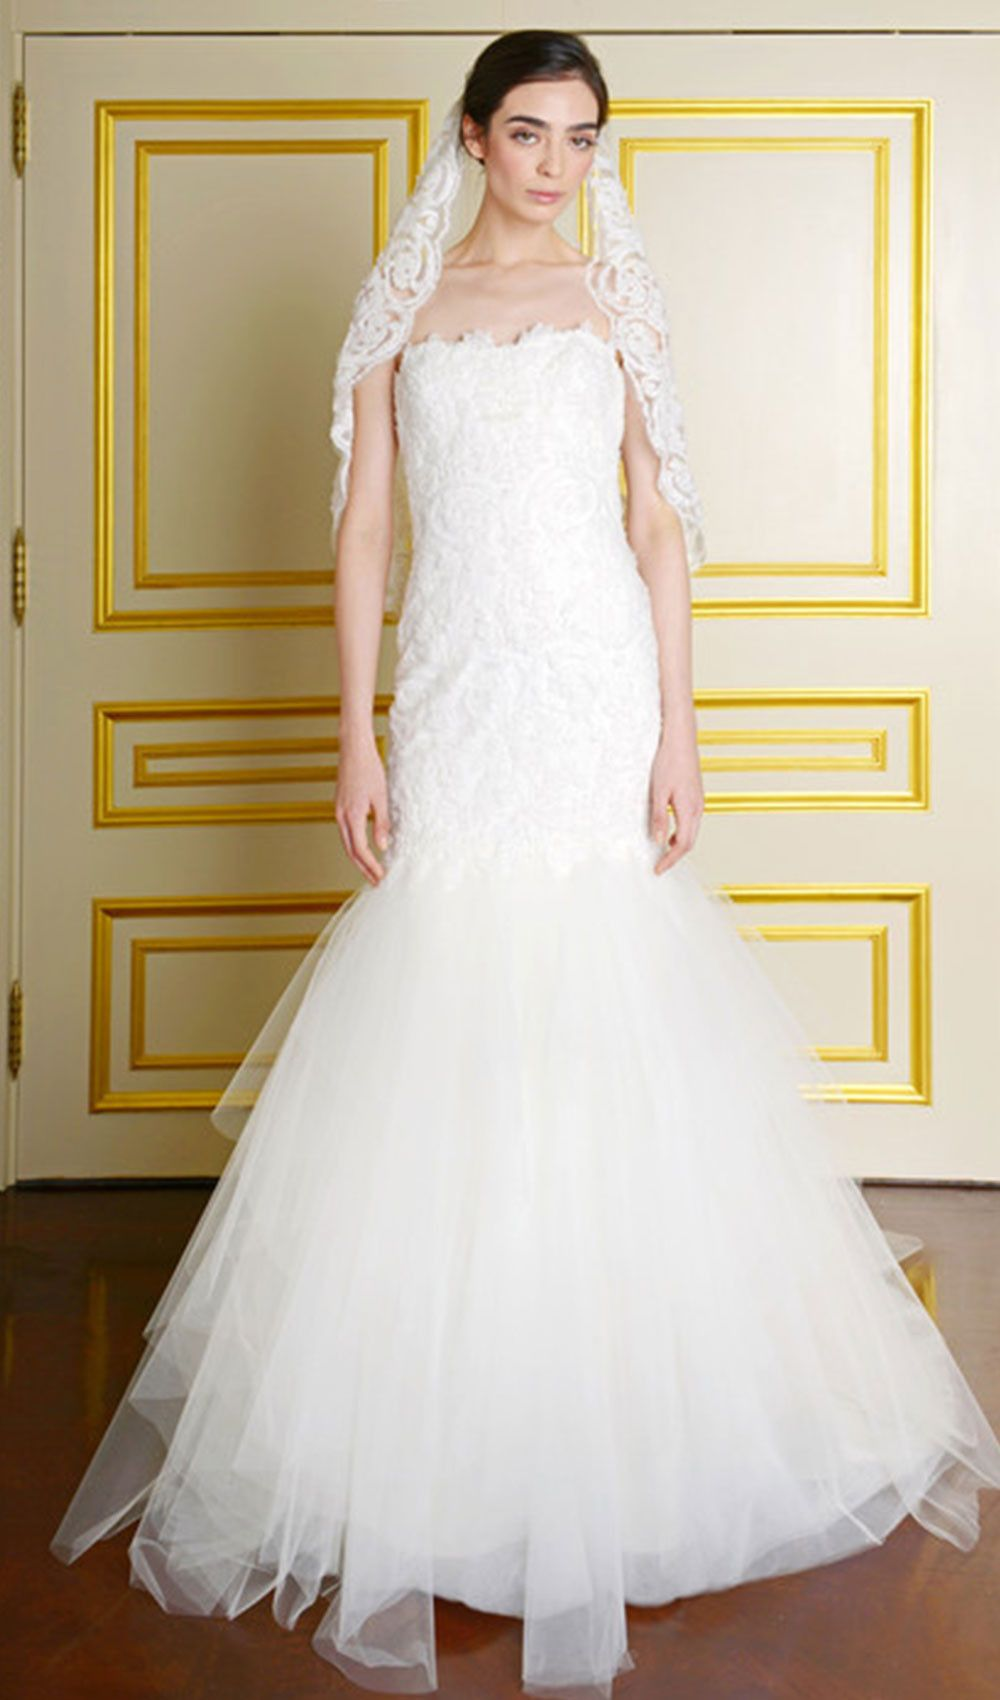 Try This Elegant Fit To Flare Wedding Dress From Marchesa At Schaffers In Scottsdale Arizona